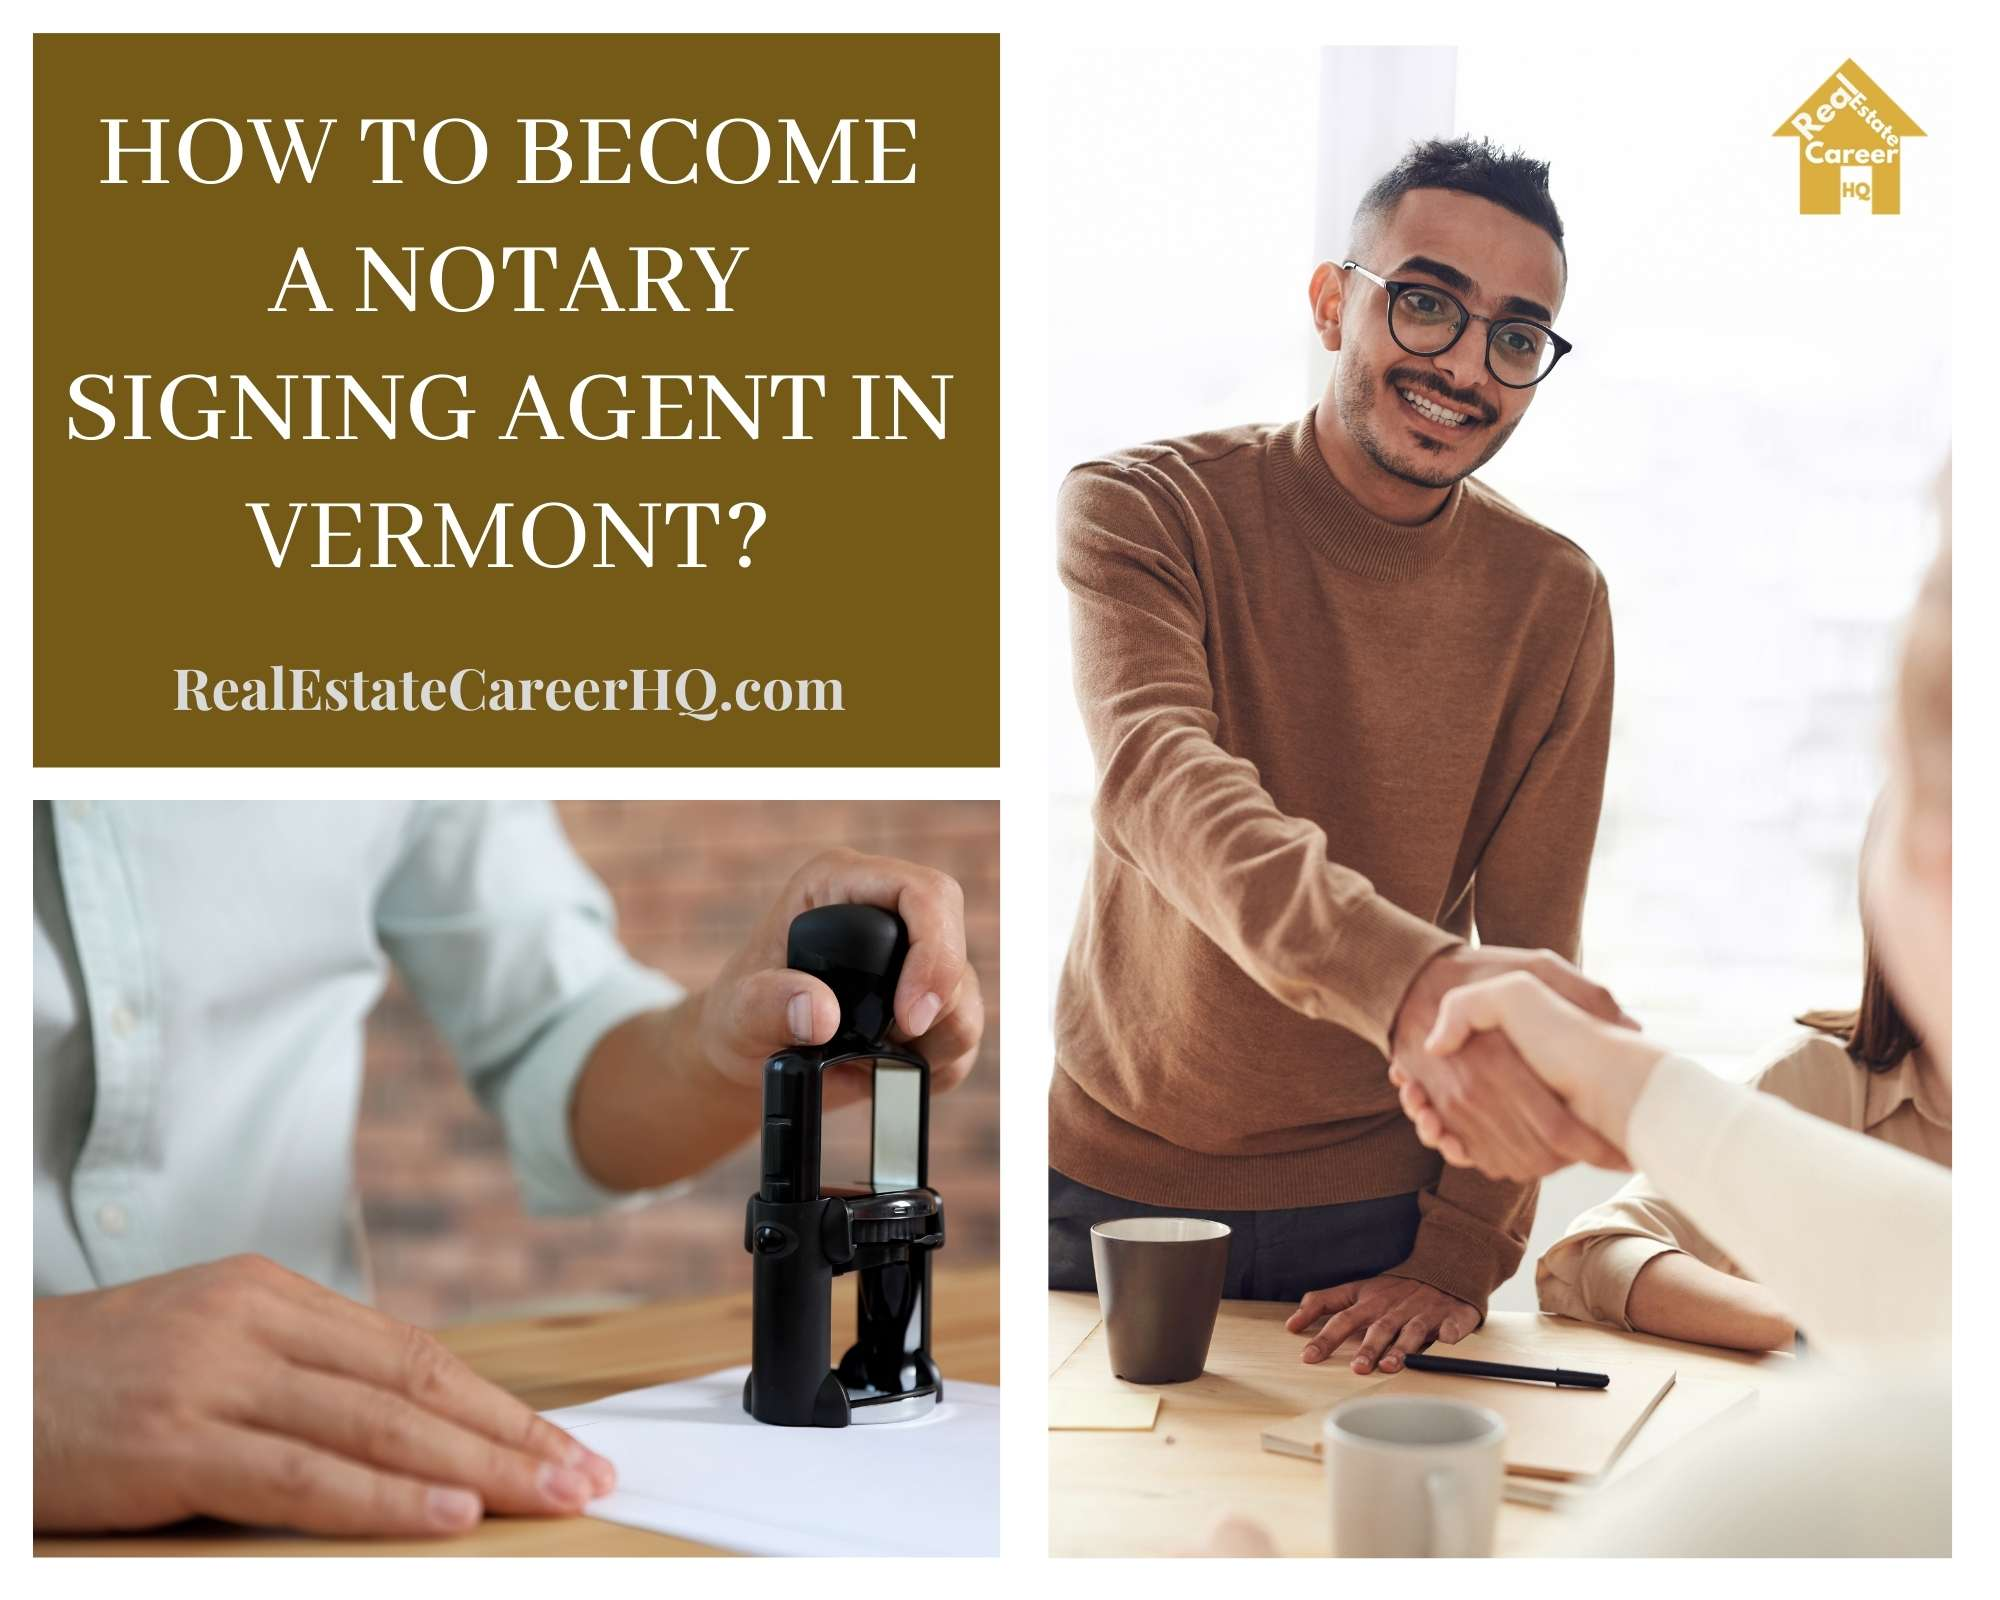 How to Become a Notary Signing Agent in Vermont